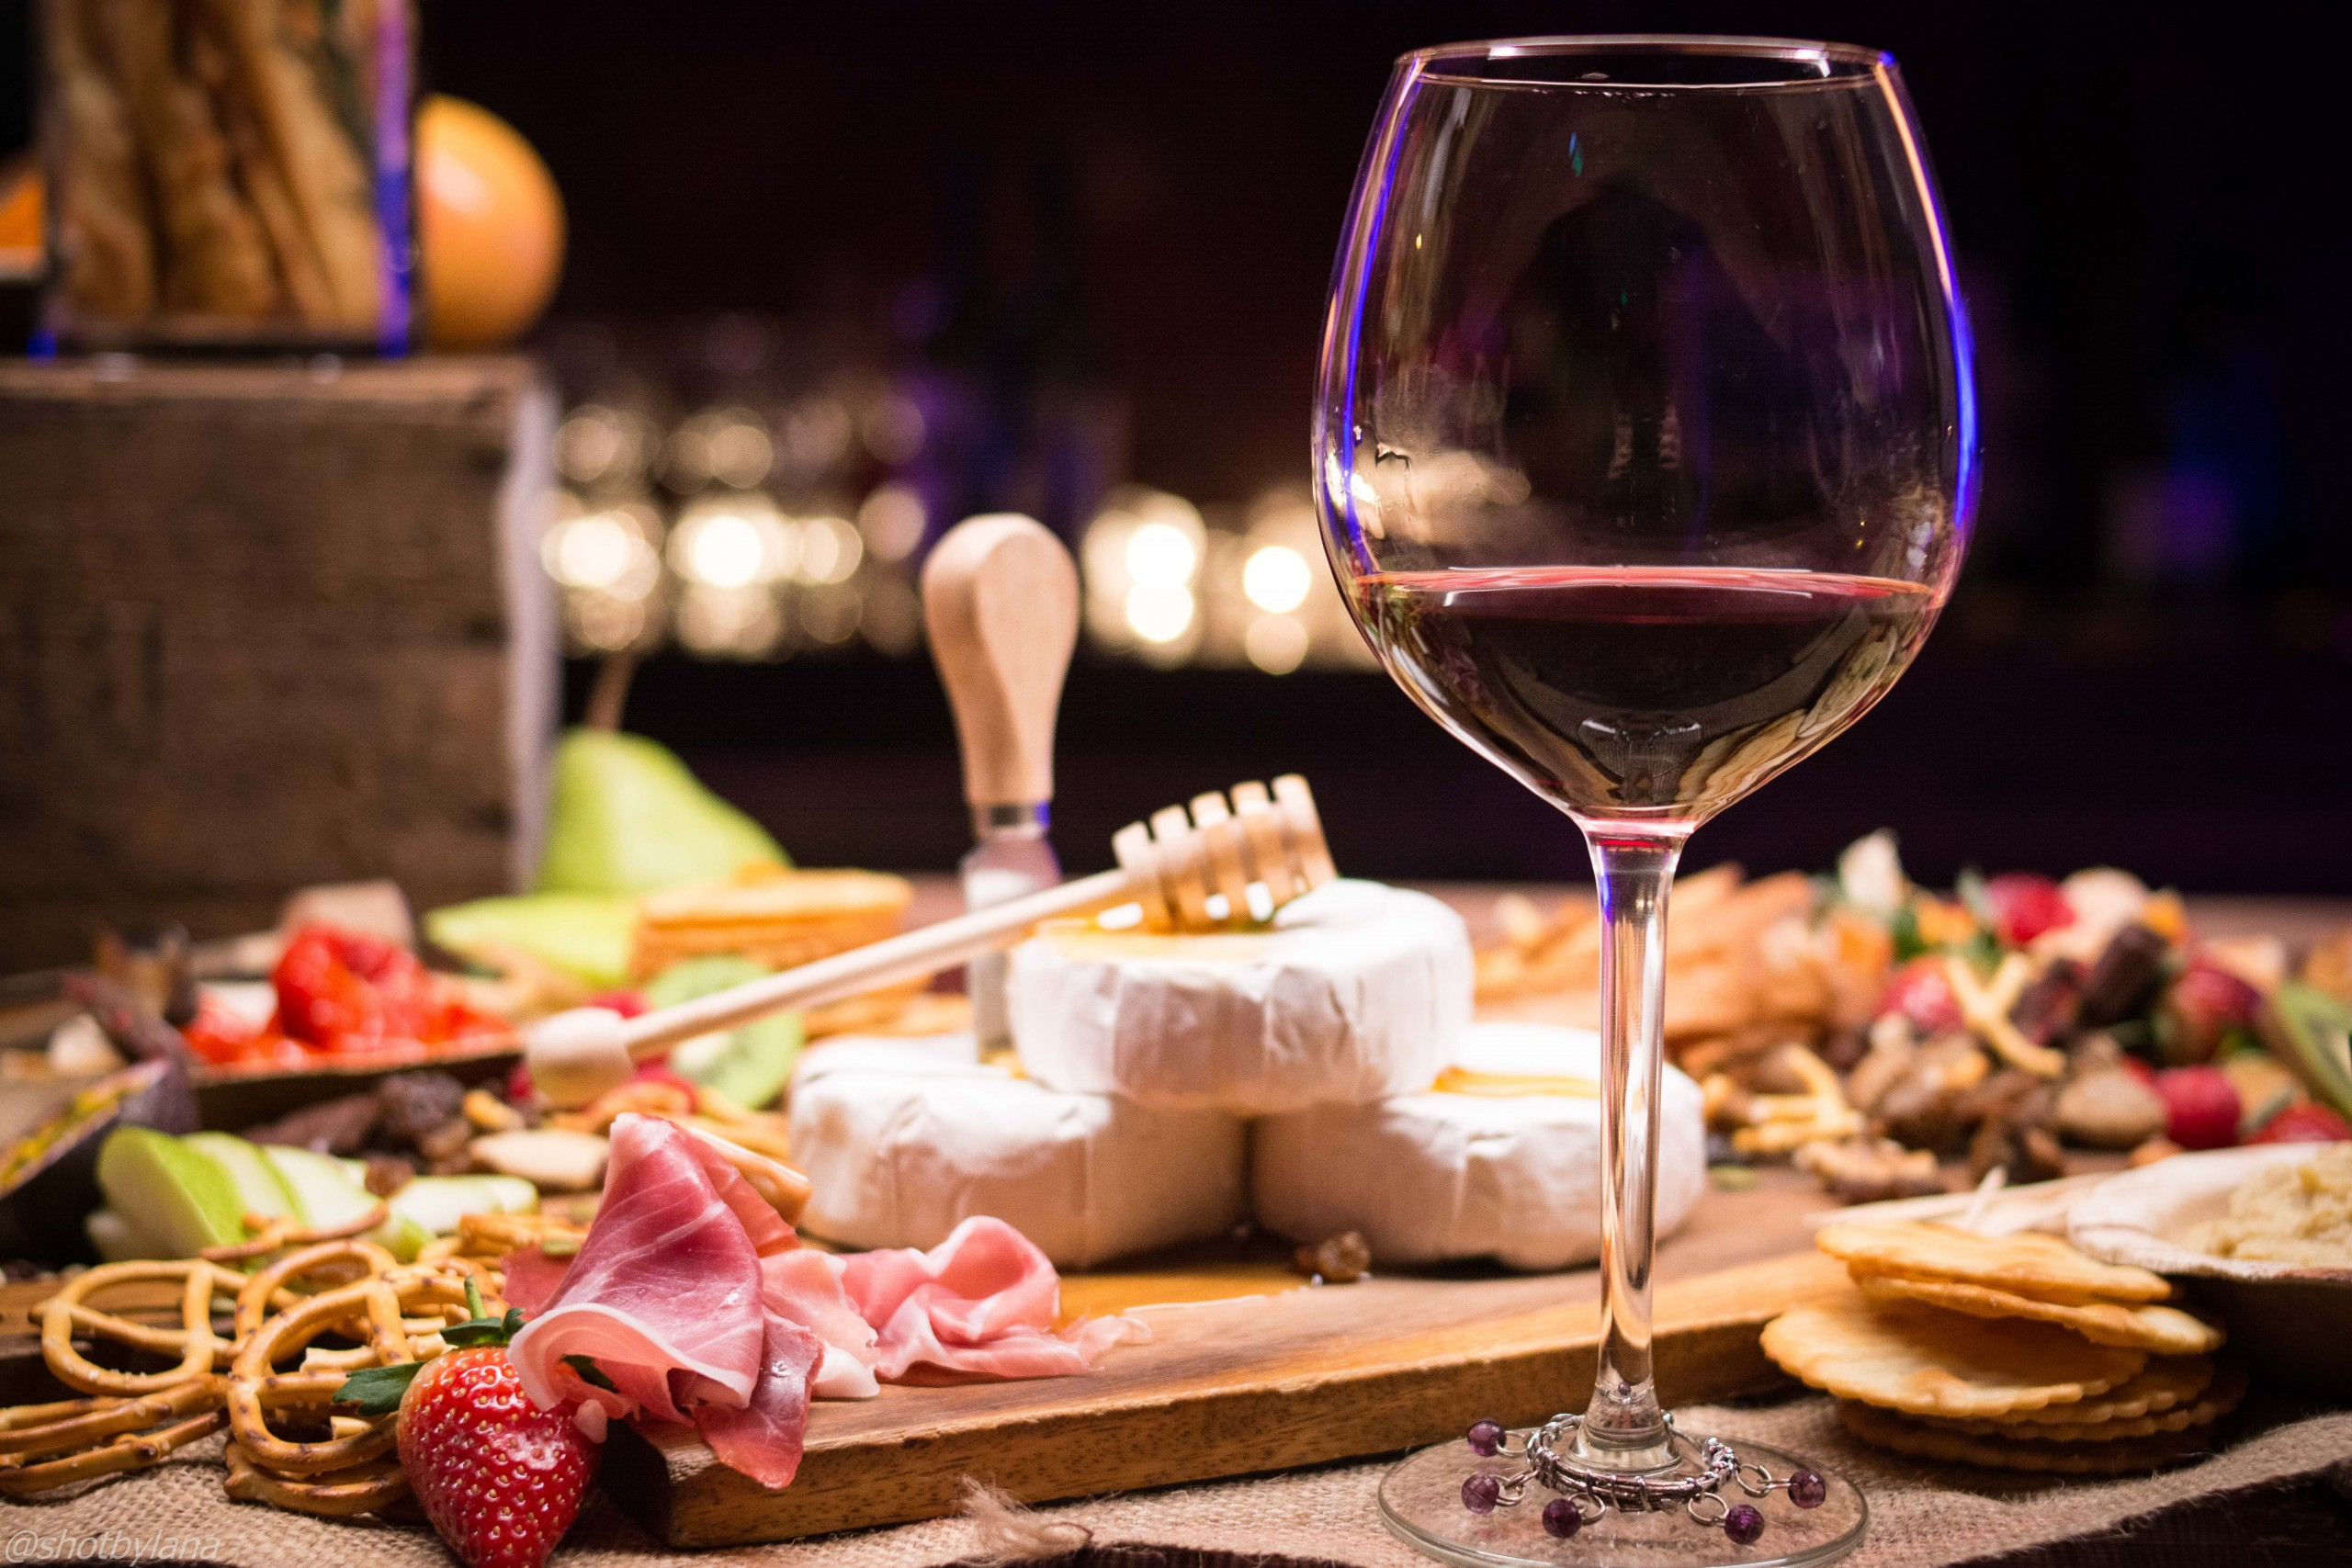 Wine glass on counter with cheese and meat spread.